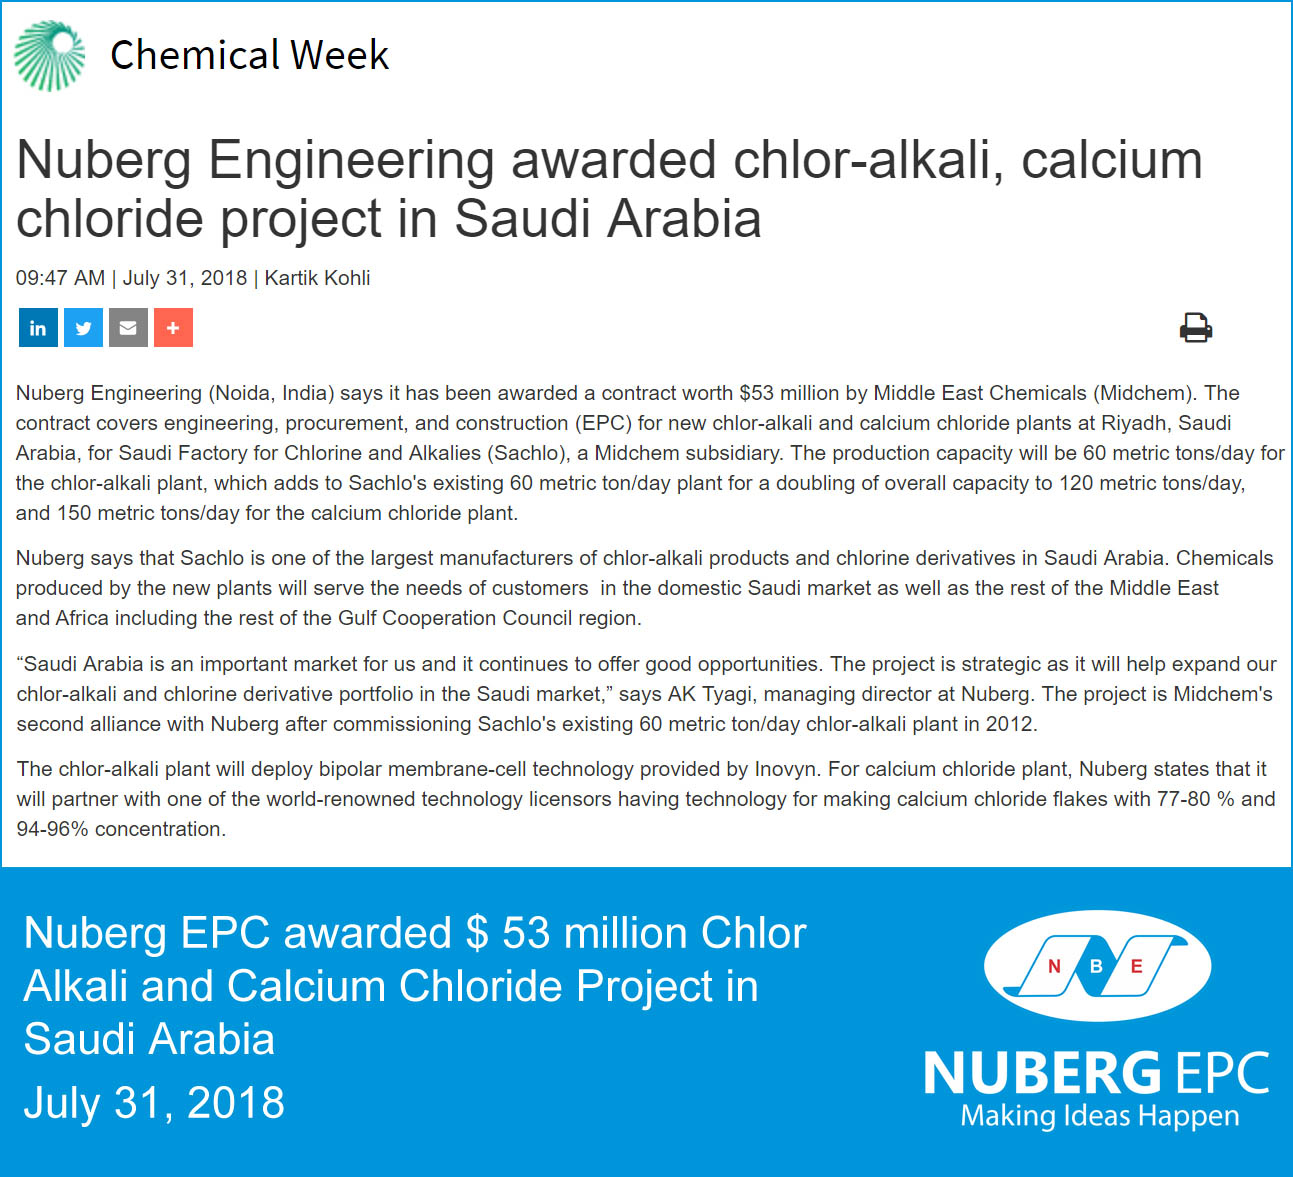 Chemical Week- Nuberg EPC awarded Chlor Alkali and Calcium Chloride turnkey project in Saudi Arabia